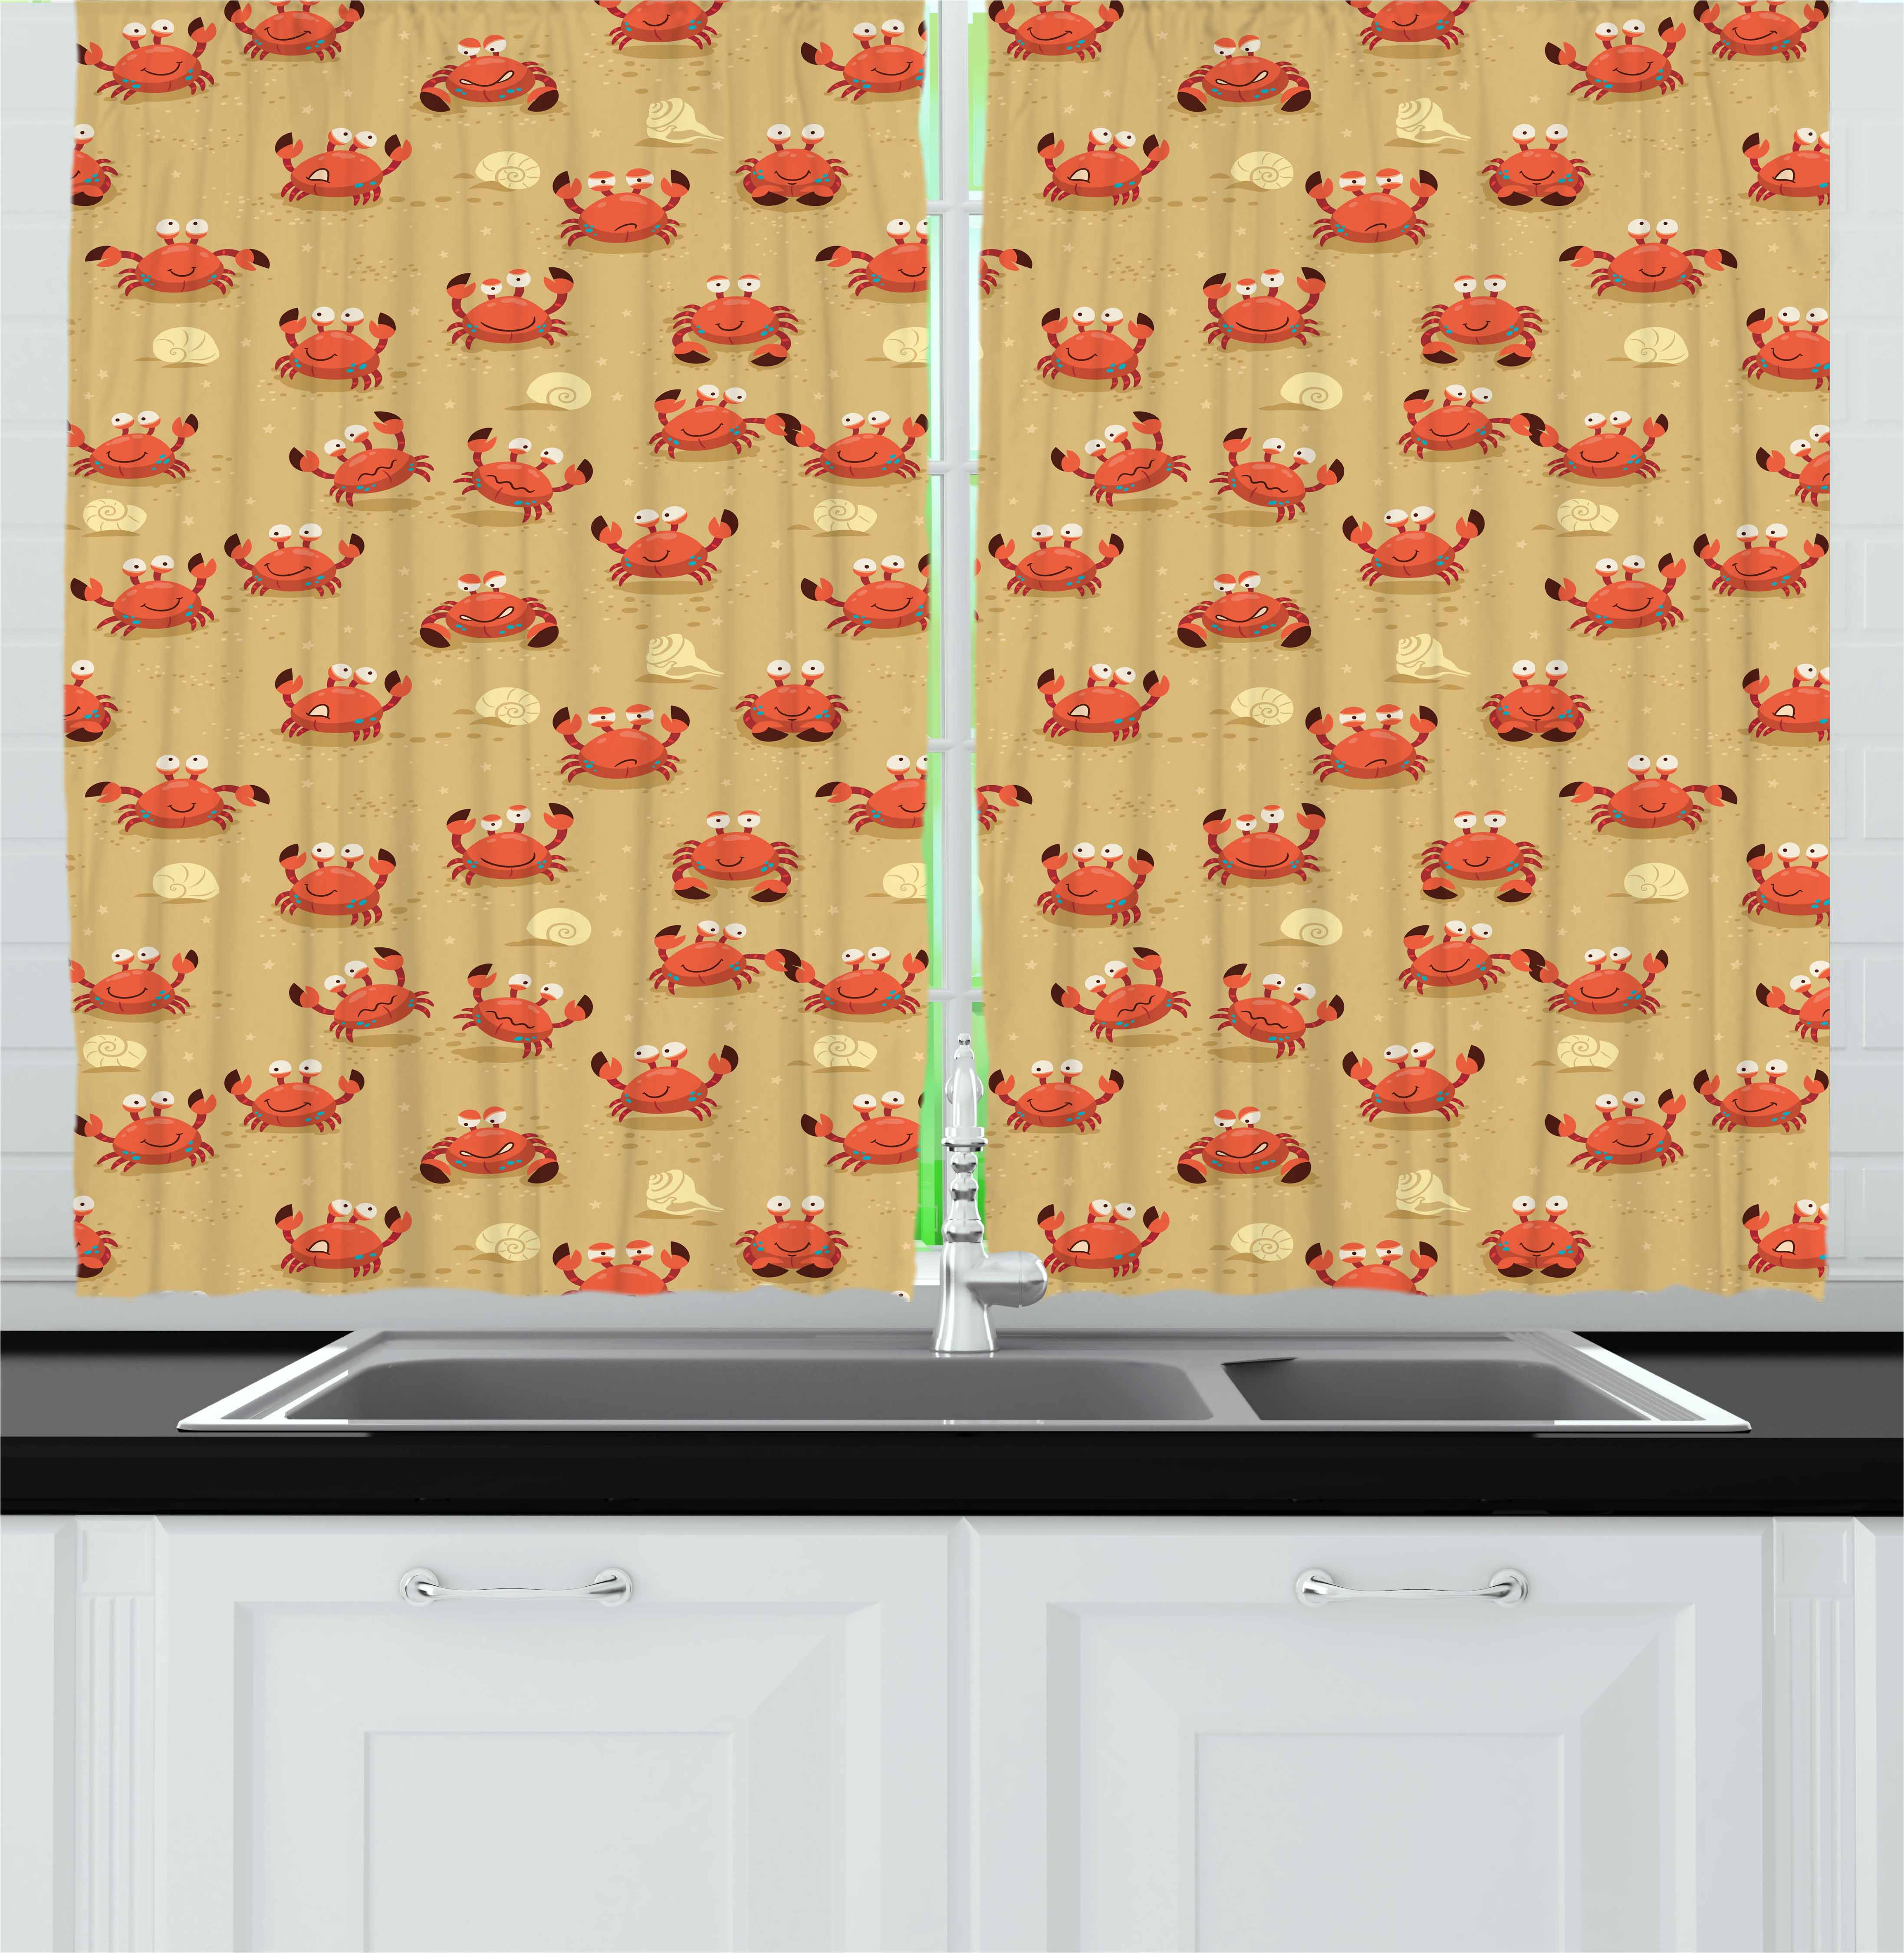 Crabs Curtains 2 Panels Set, Playful Childish Sea Animals on a Sandy Beach with Shells Kids Design Fauna, Window Drapes for Living Room Bedroom, 55W X 39L Inches, Pale Brown Orange, by Ambesonne